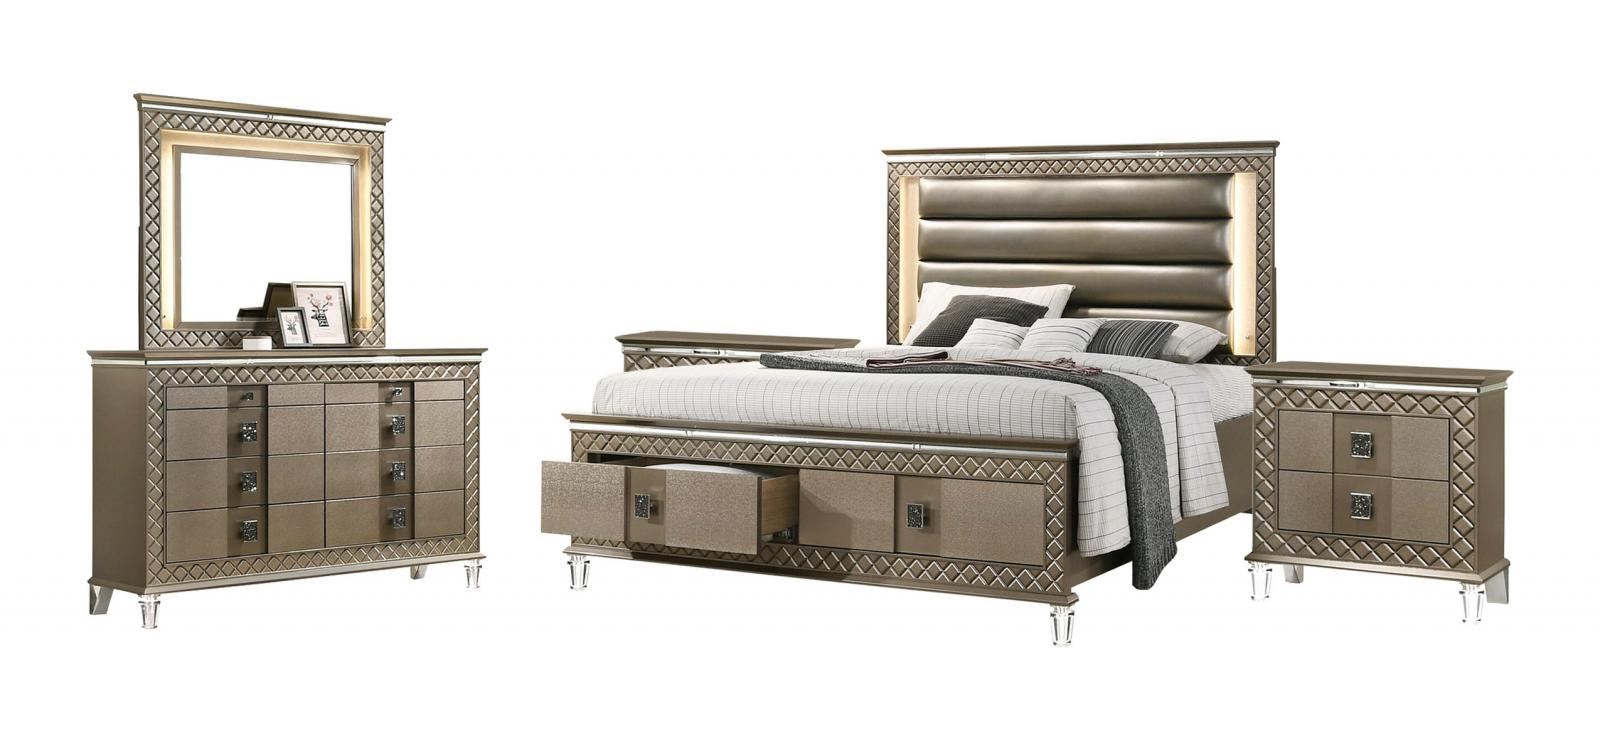 Contemporary Bronze Faux Leather Panel Bedroom Set 5 pcs Cosmos Furniture Coral-K-Set-5